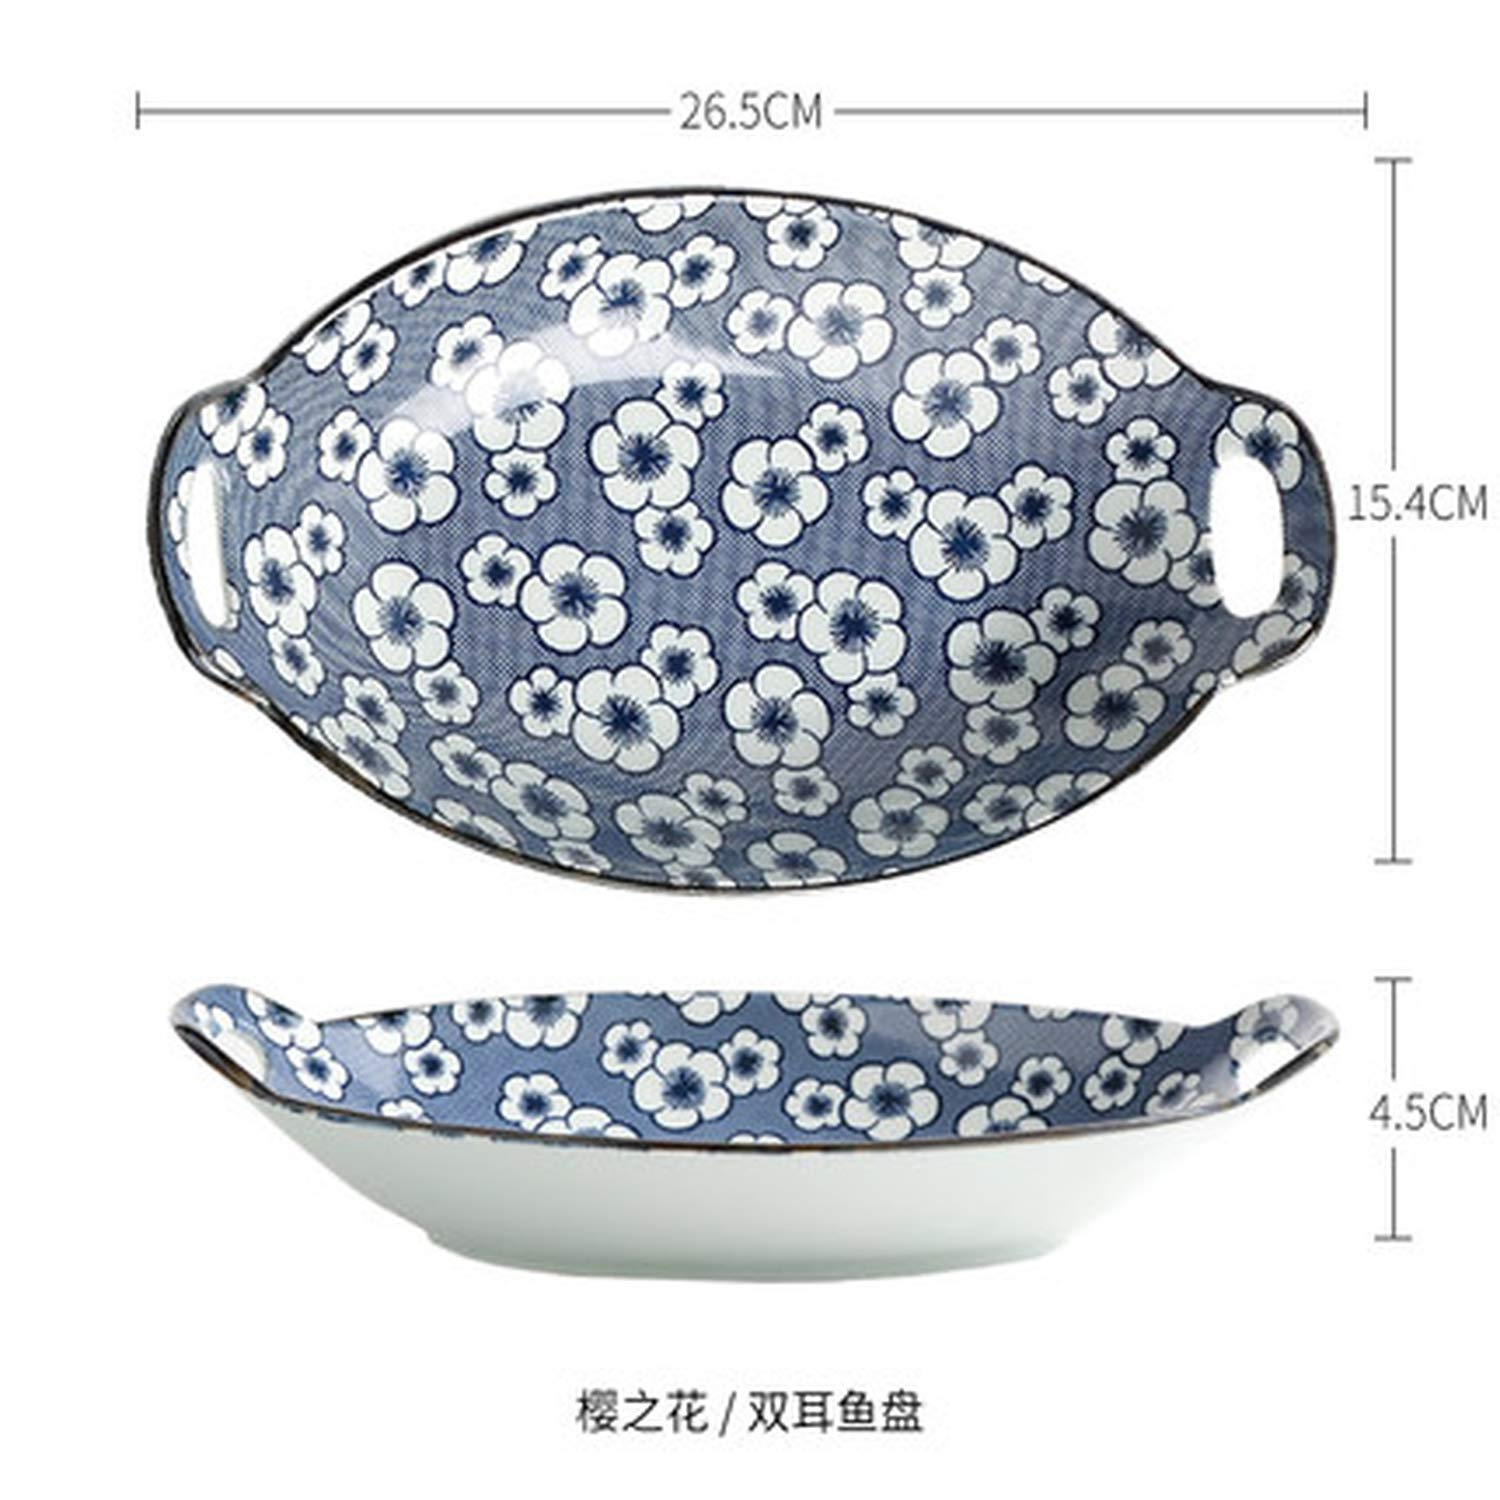 10 inch Creative two eared boat Steamed fish plate Japanese Ceramic Dinner Plate Big Baking tray,03 Style